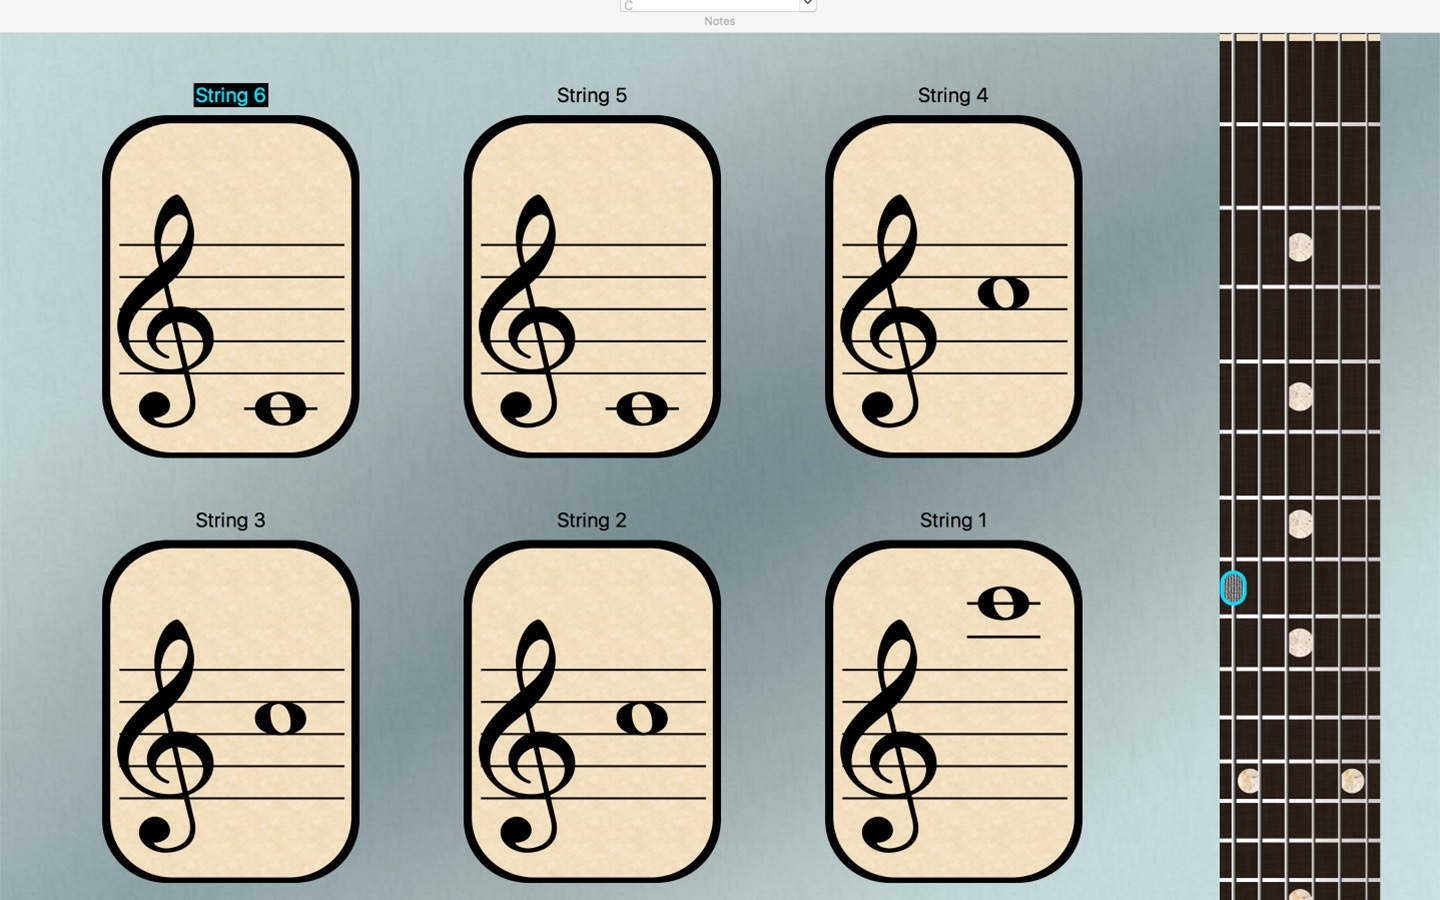 Guitar Notes by String